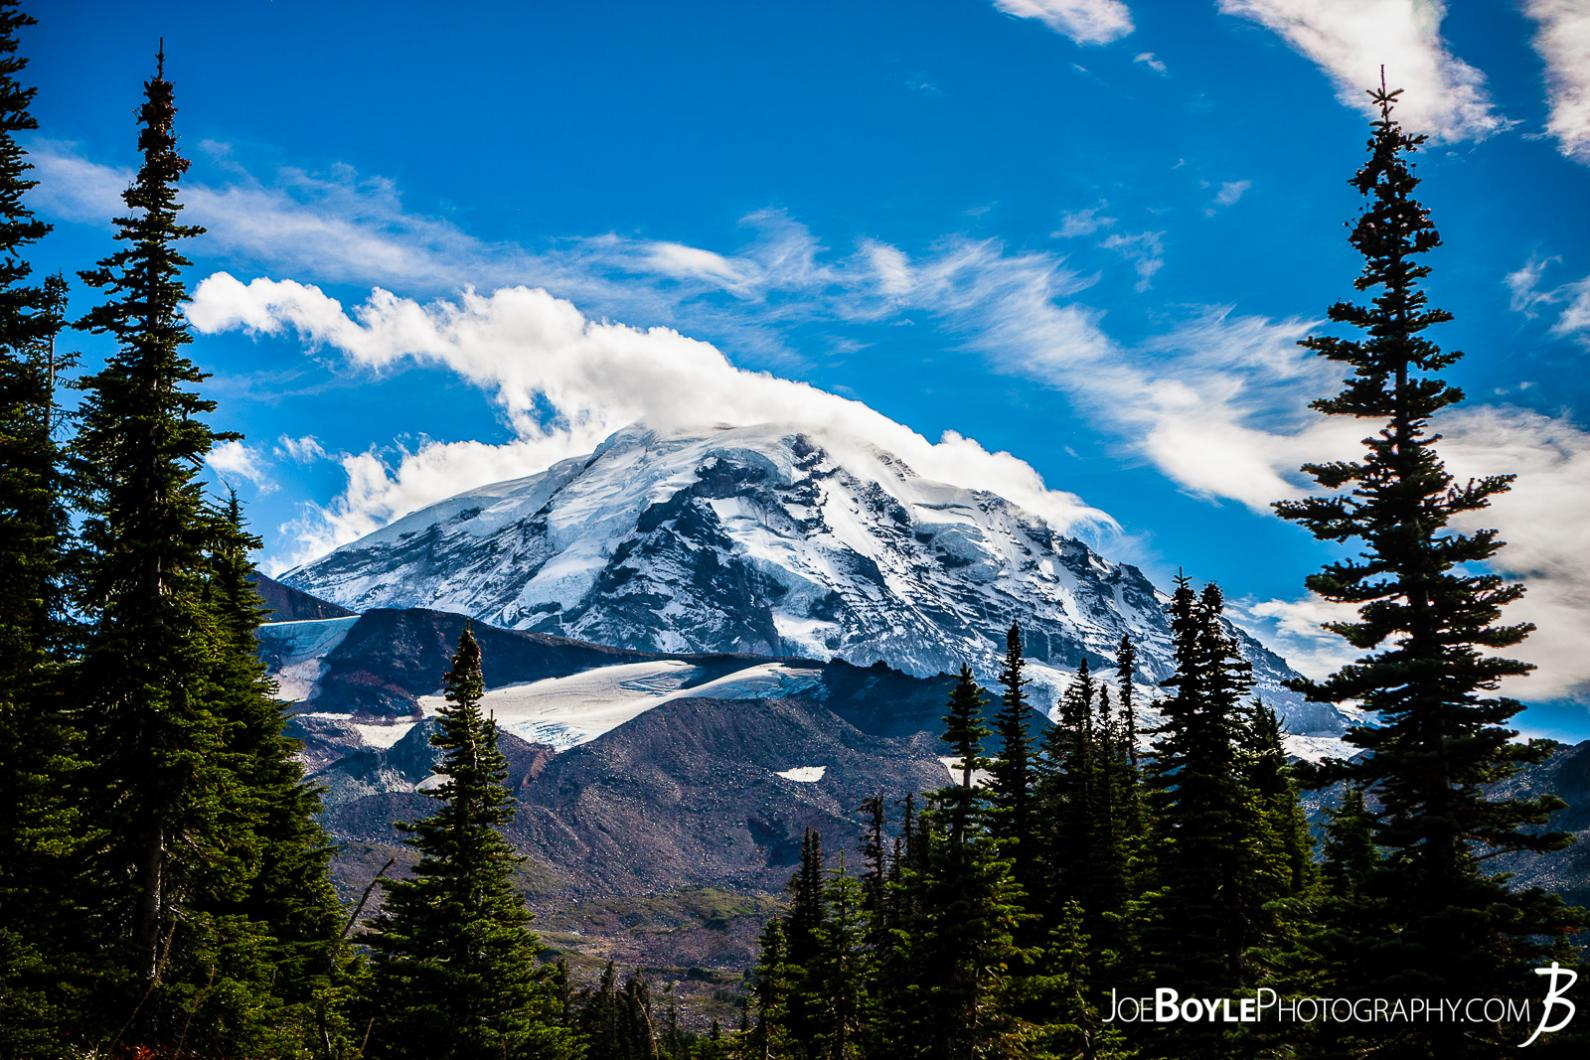 mount-rainier-from-spray-park-trail-with-trees